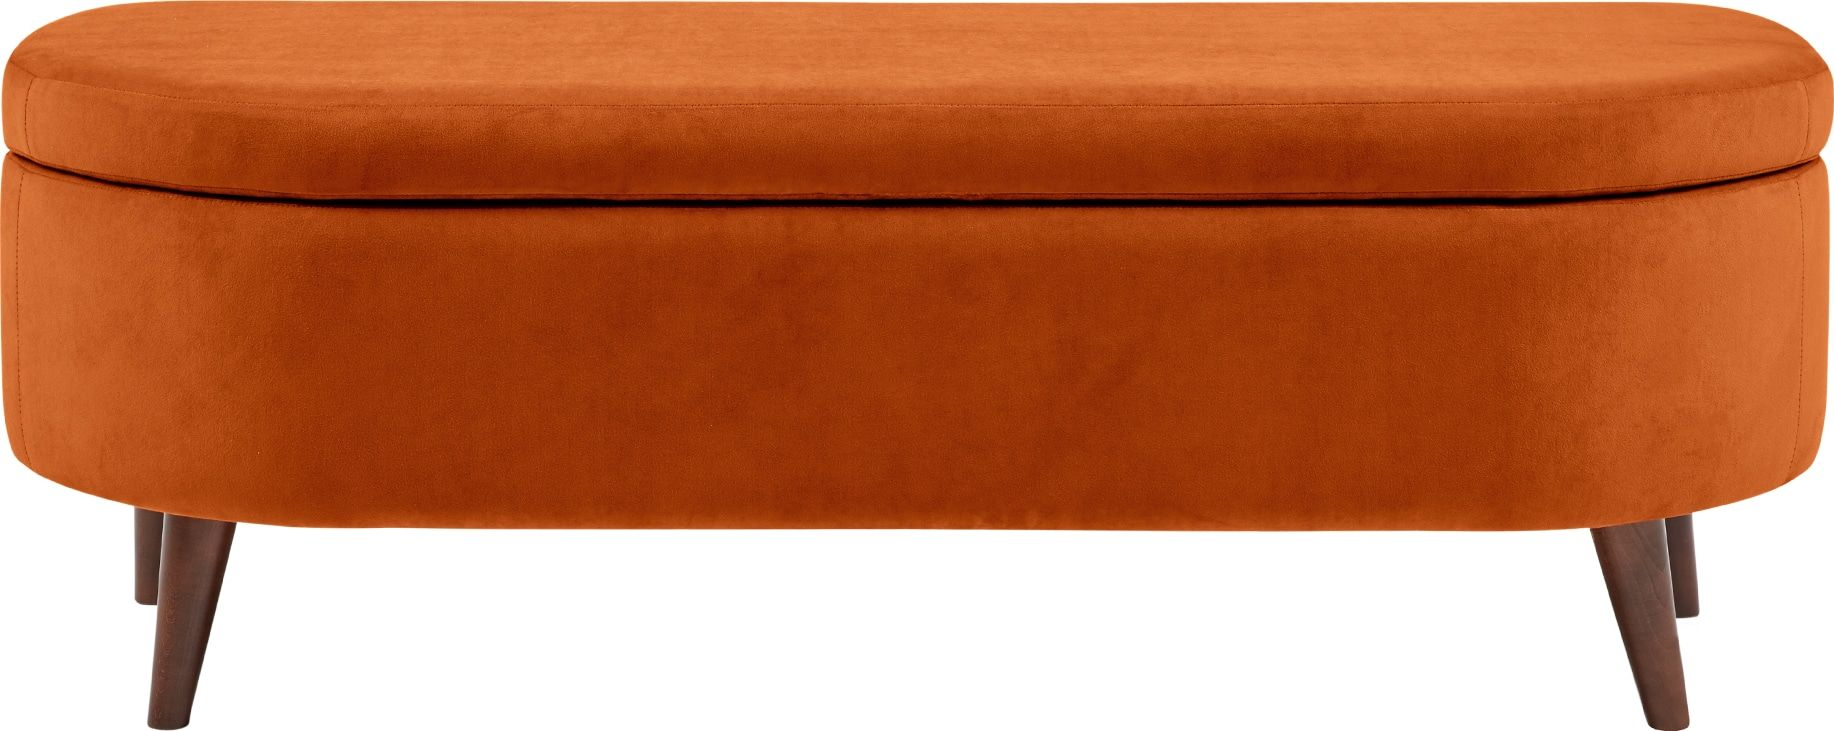 Cool Made Com Products Ottoman Bench Ottoman Art Deco Bedroom Alphanode Cool Chair Designs And Ideas Alphanodeonline